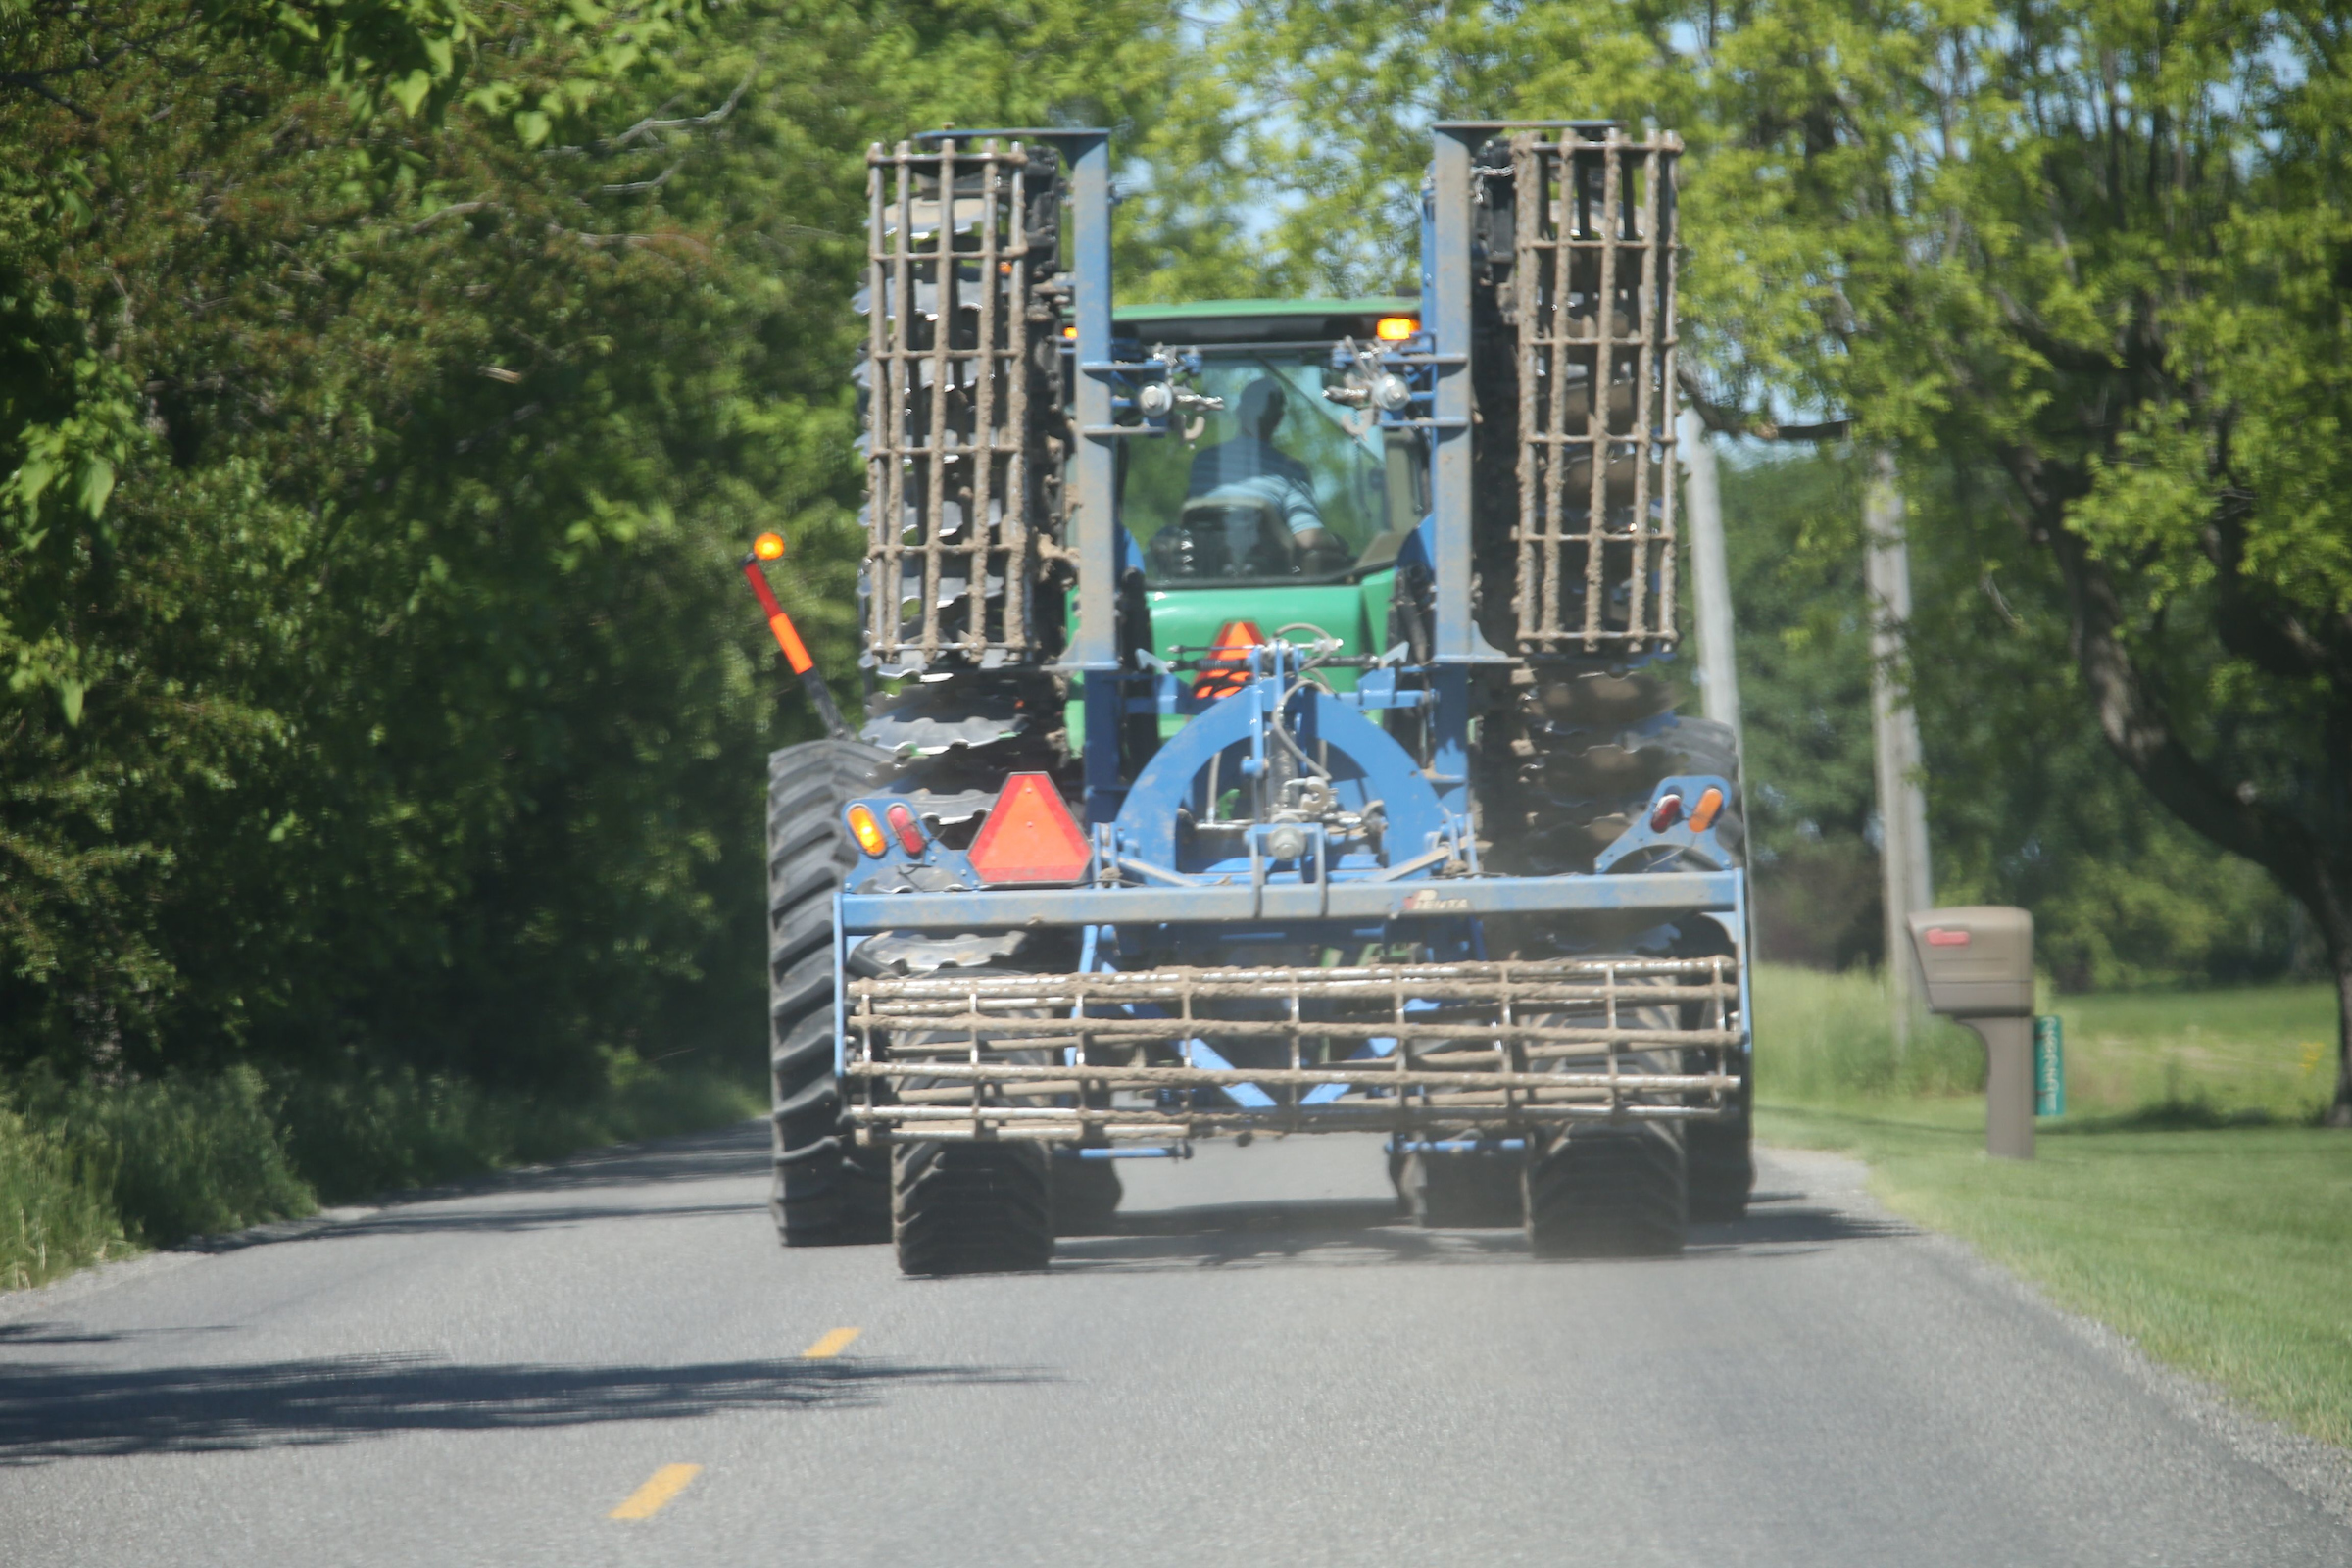 Farm Safety - 06/02/2017 - photos of a farm implement driving down a narrow road.